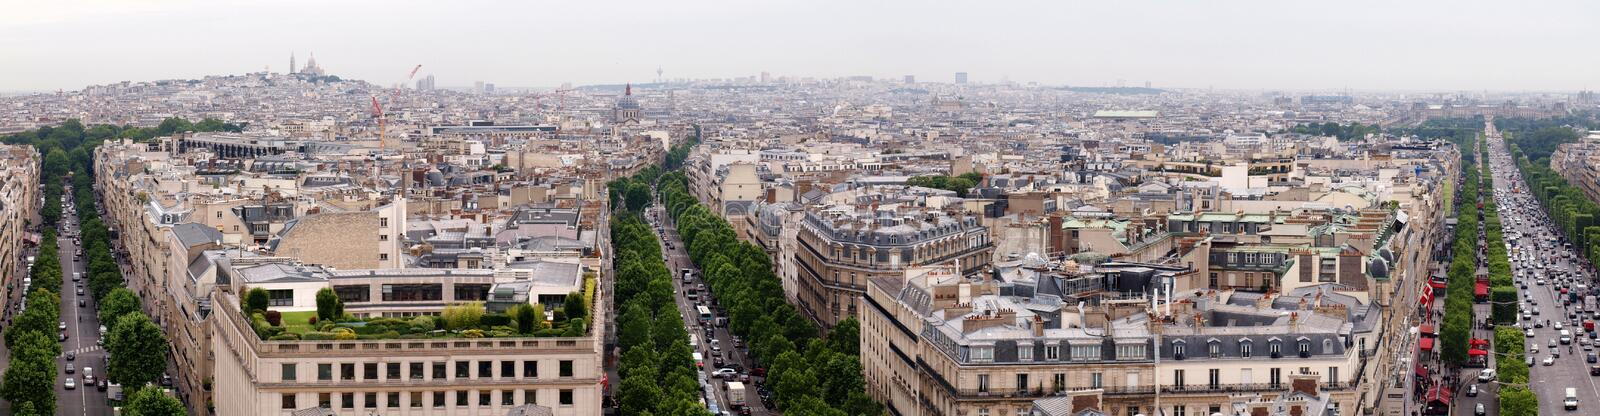 Paris City View From Arc De Triomphe Stock Images